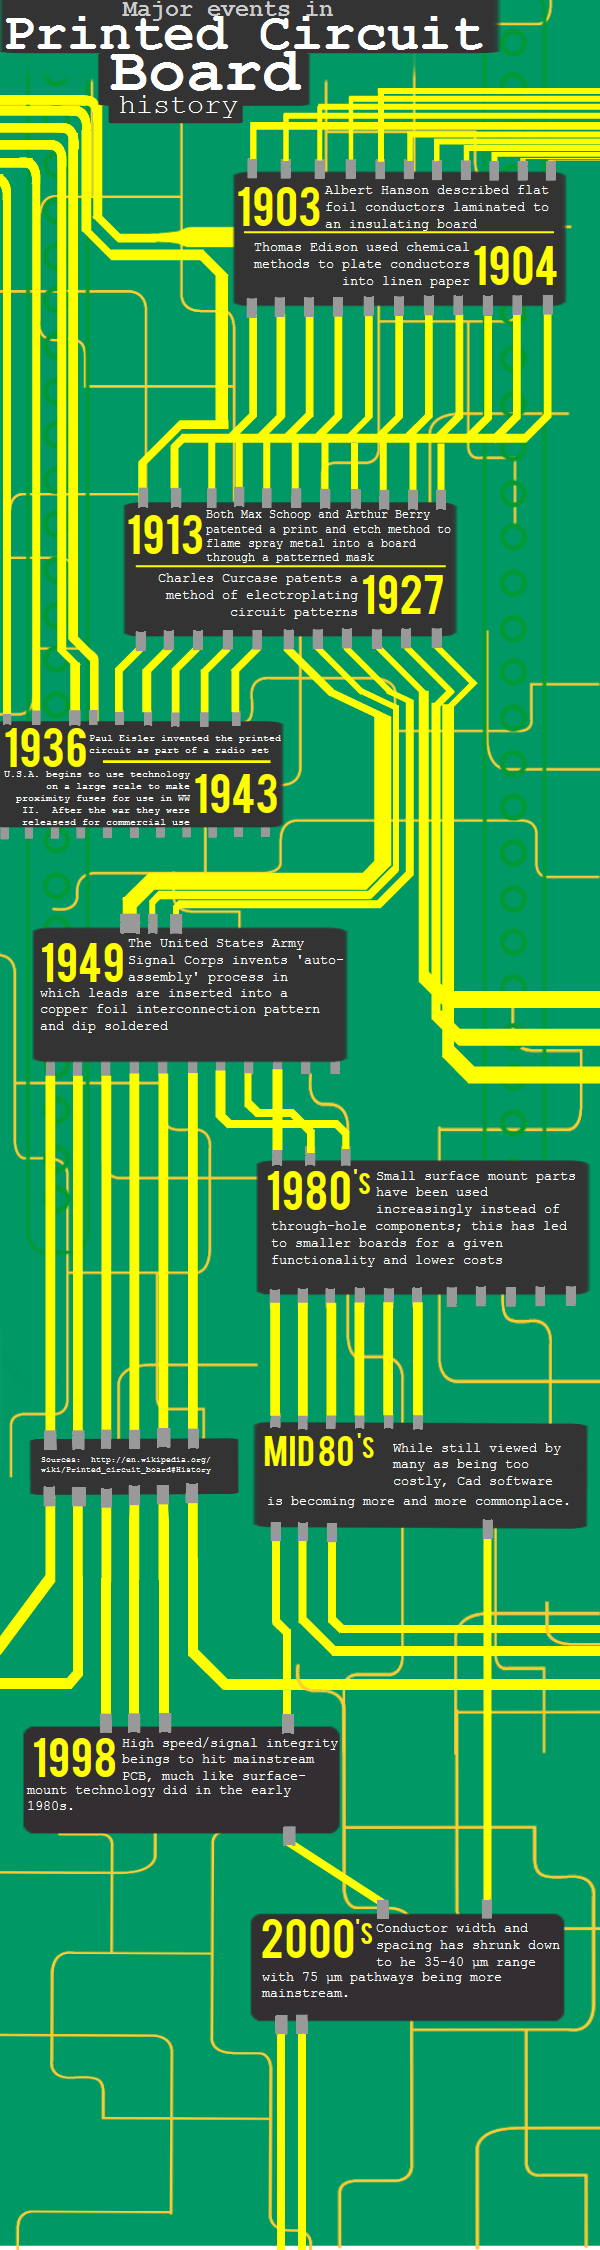 History of PCB - Infographic